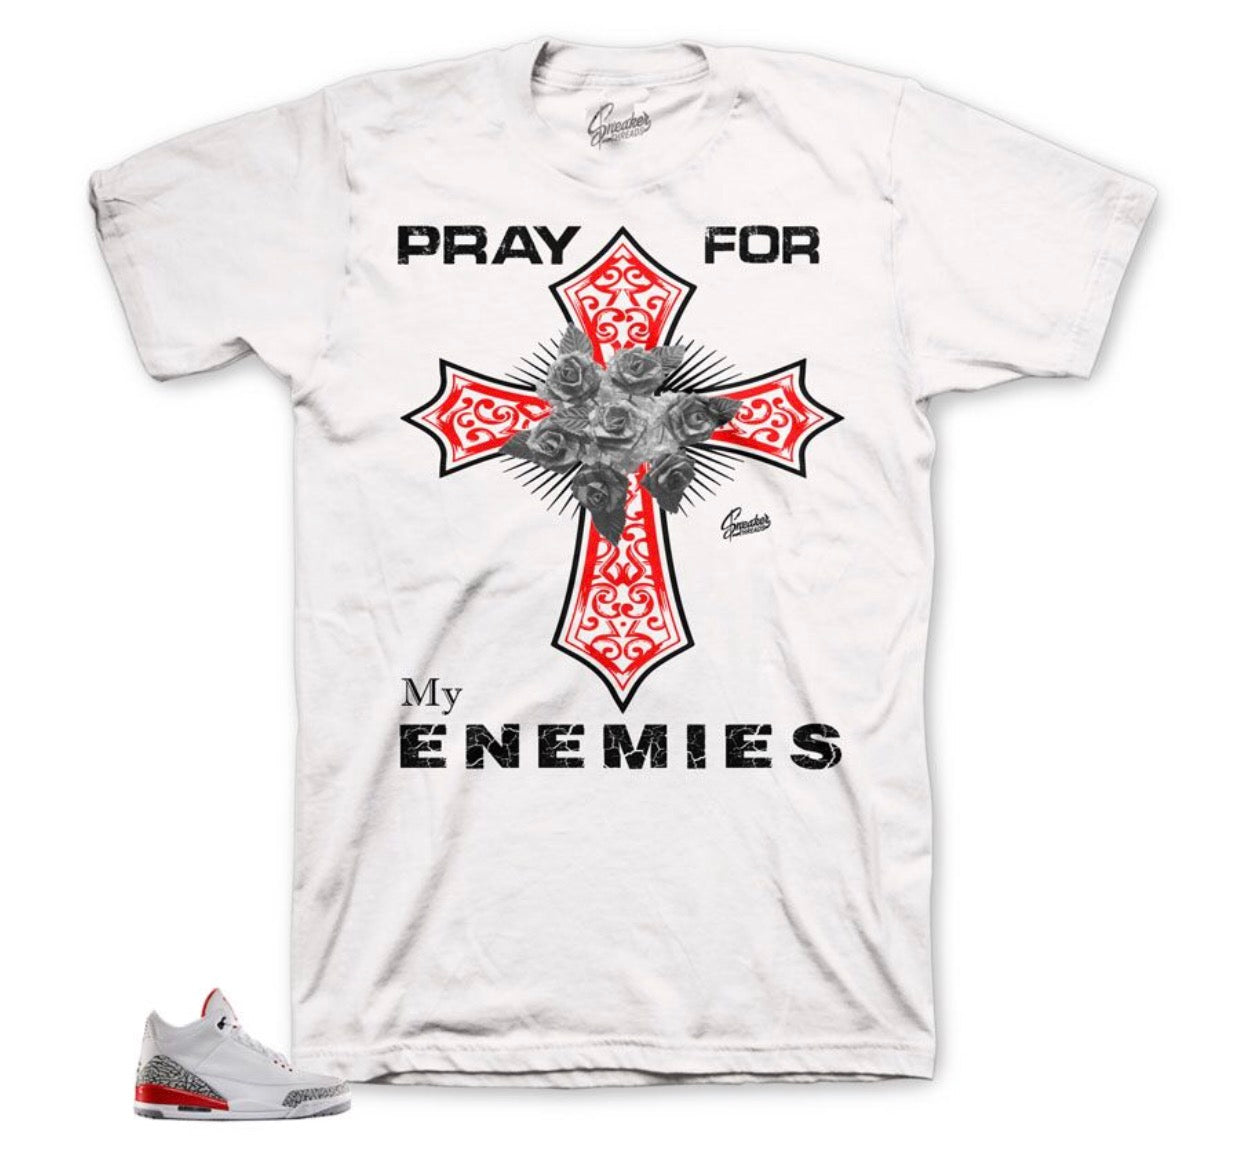 Jordan 3 Hall of Fame Pray Shirt